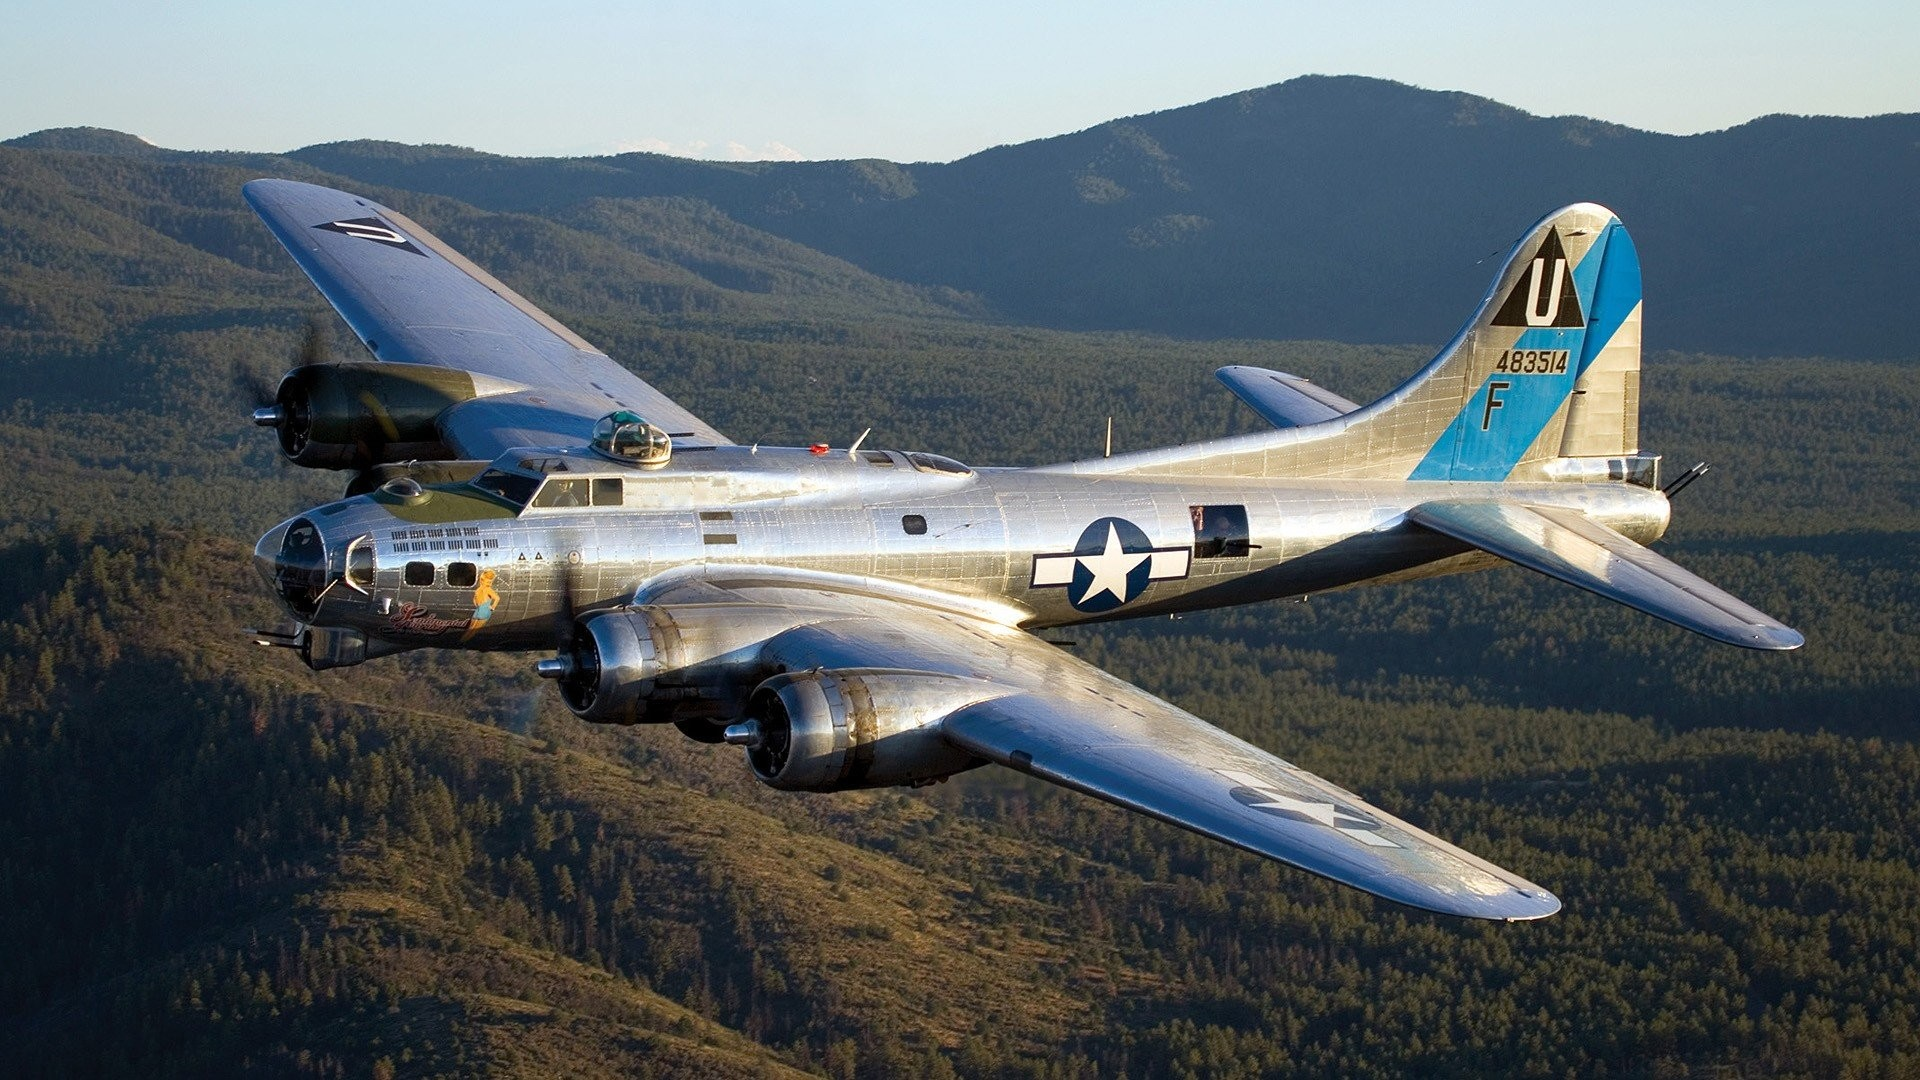 Airplanes Warbird B-17 Flying Fortress wallpaper | | 262475 |  WallpaperUP